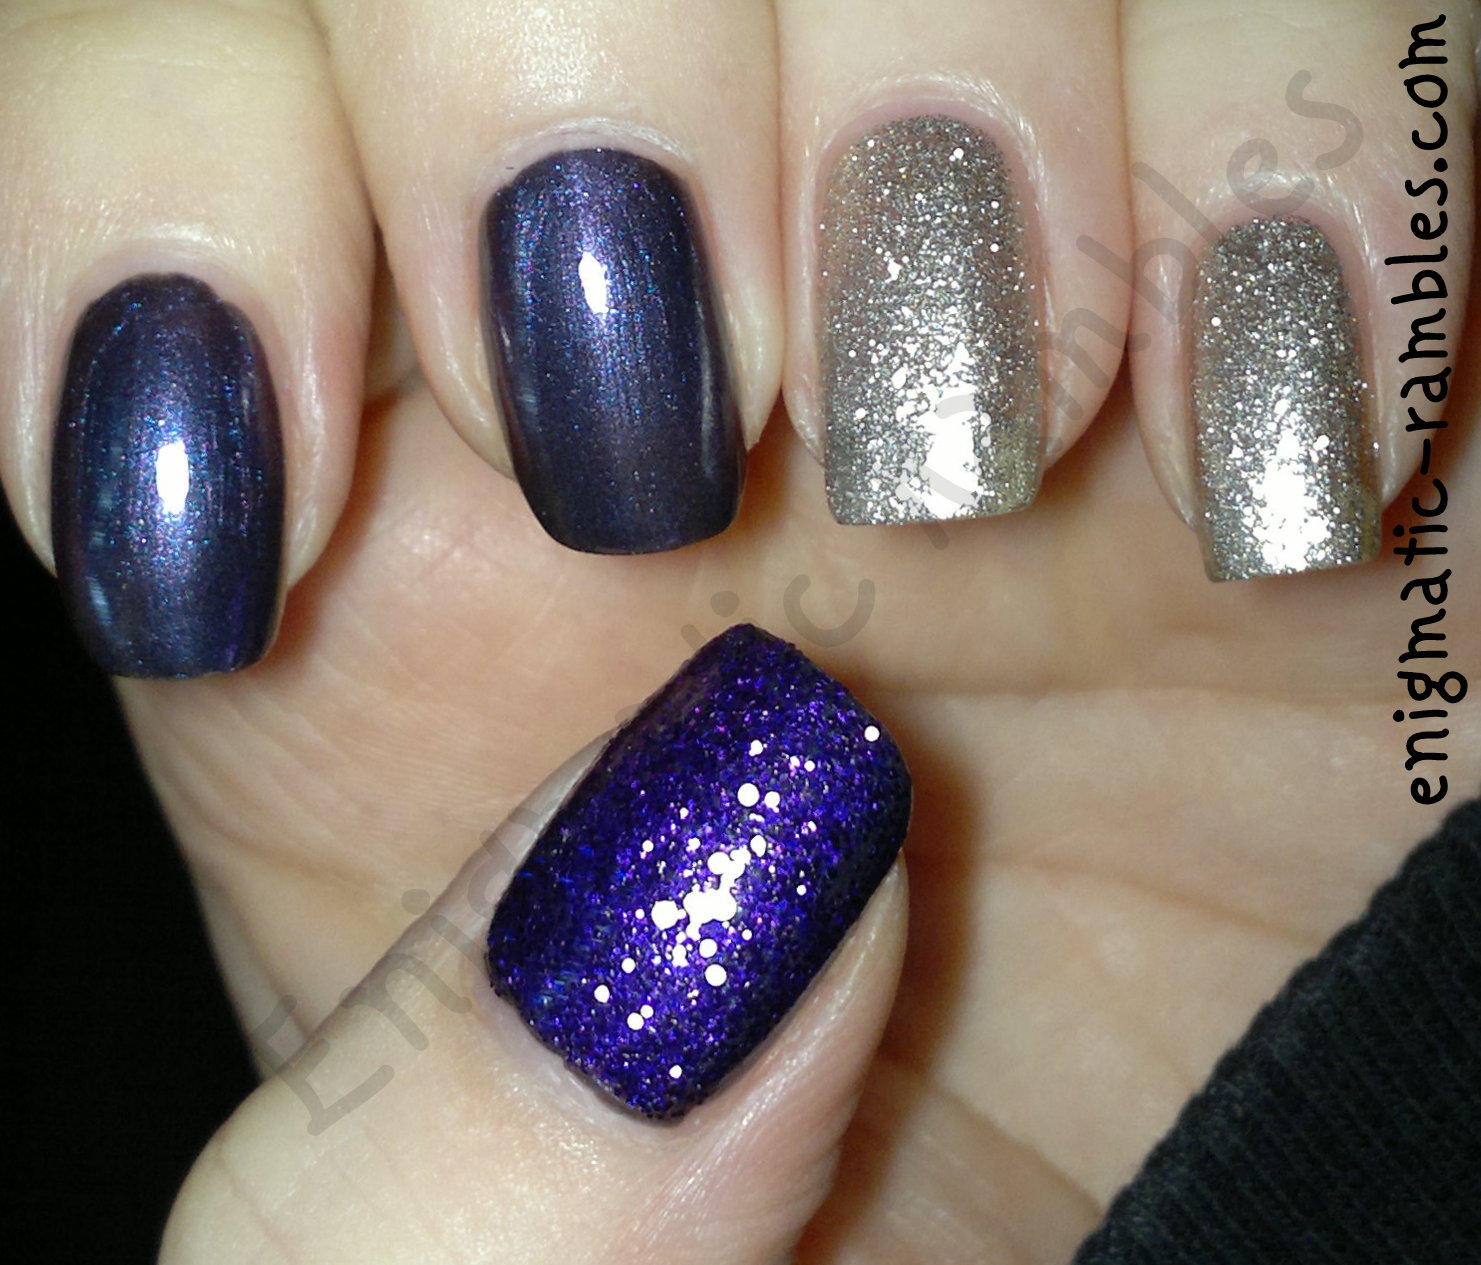 skittle-nails-stargazer-142-essie-beyond-cozy-models-own-purple-haze